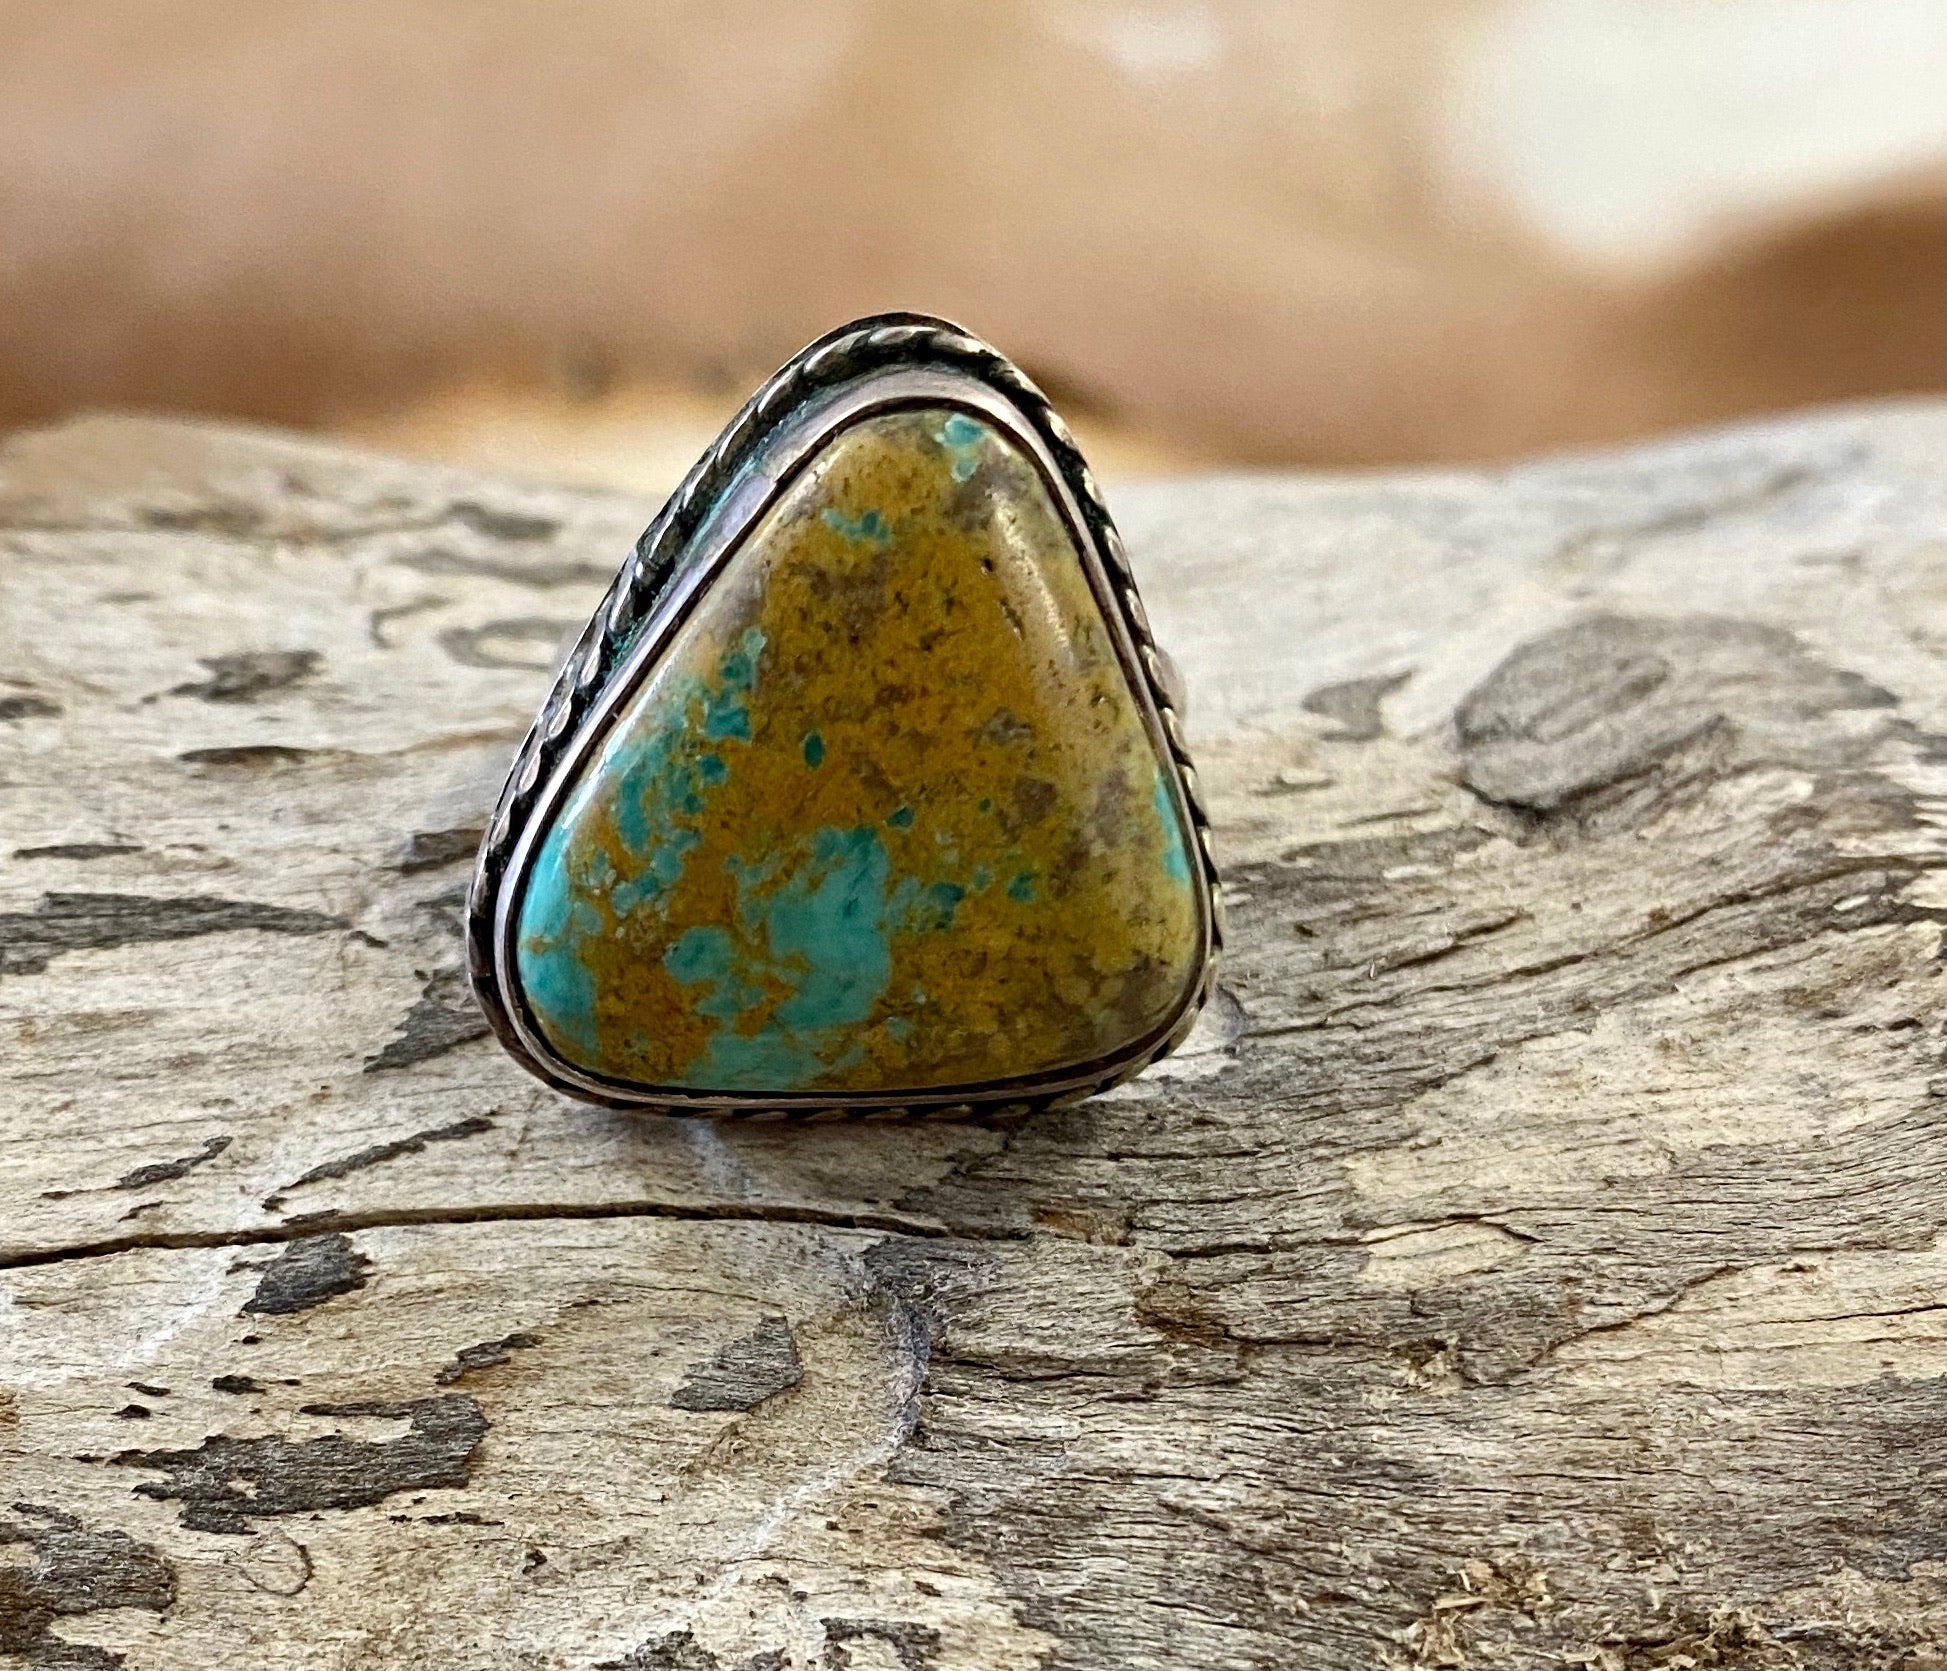 The Georgia Green Turquoise Ring